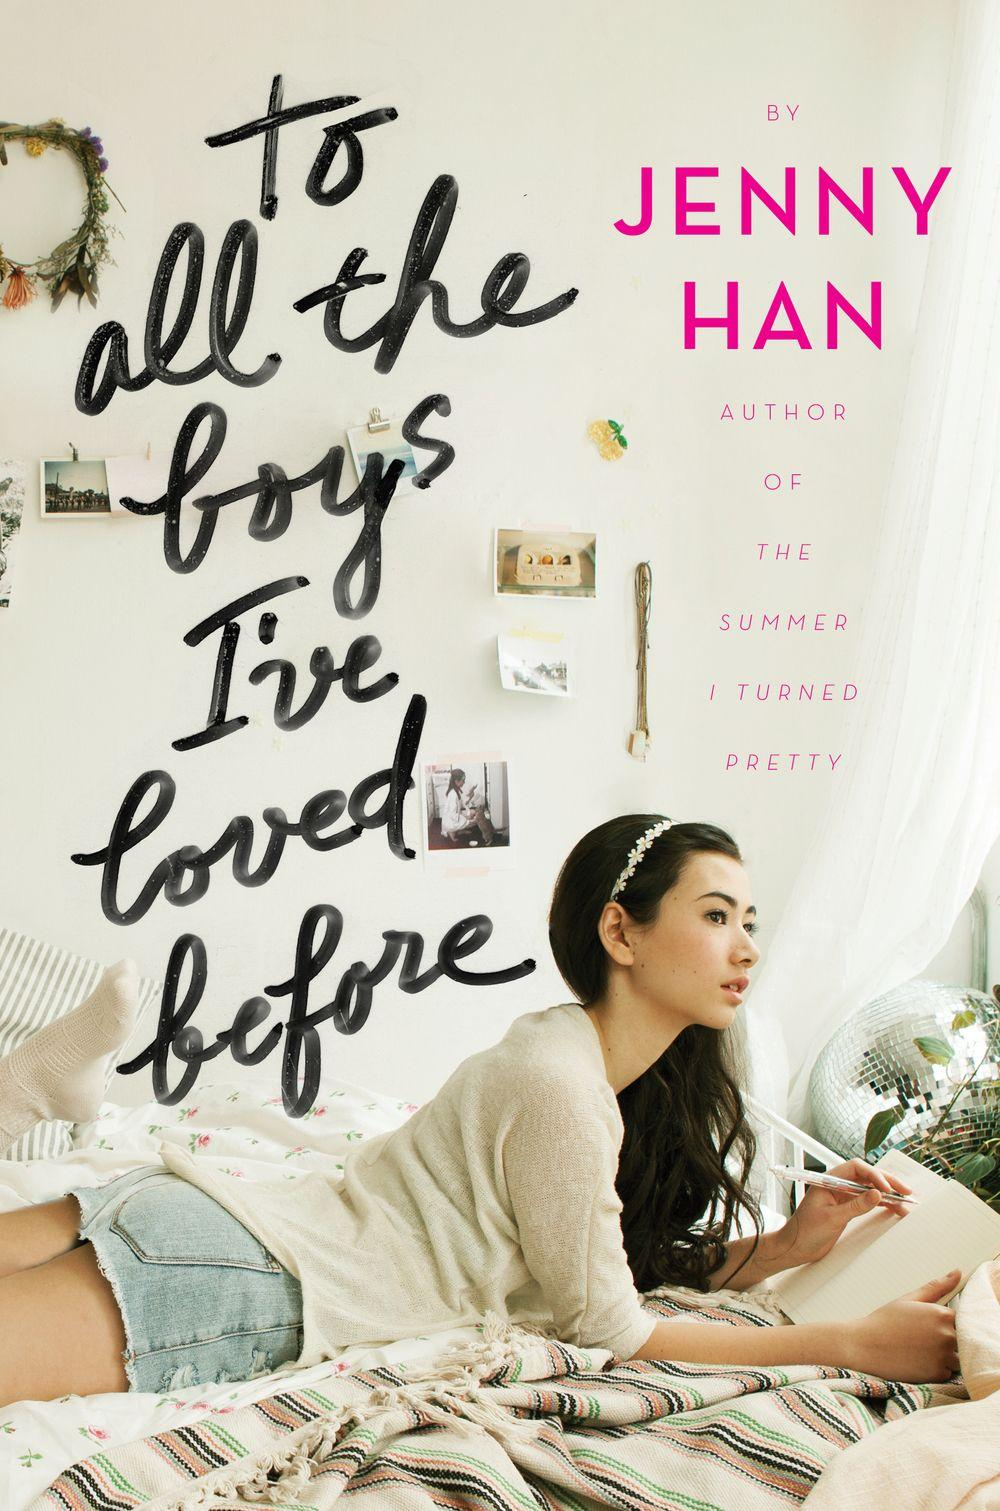 Jenny Han's 'To All The Boys I've Loved Before' Book Review